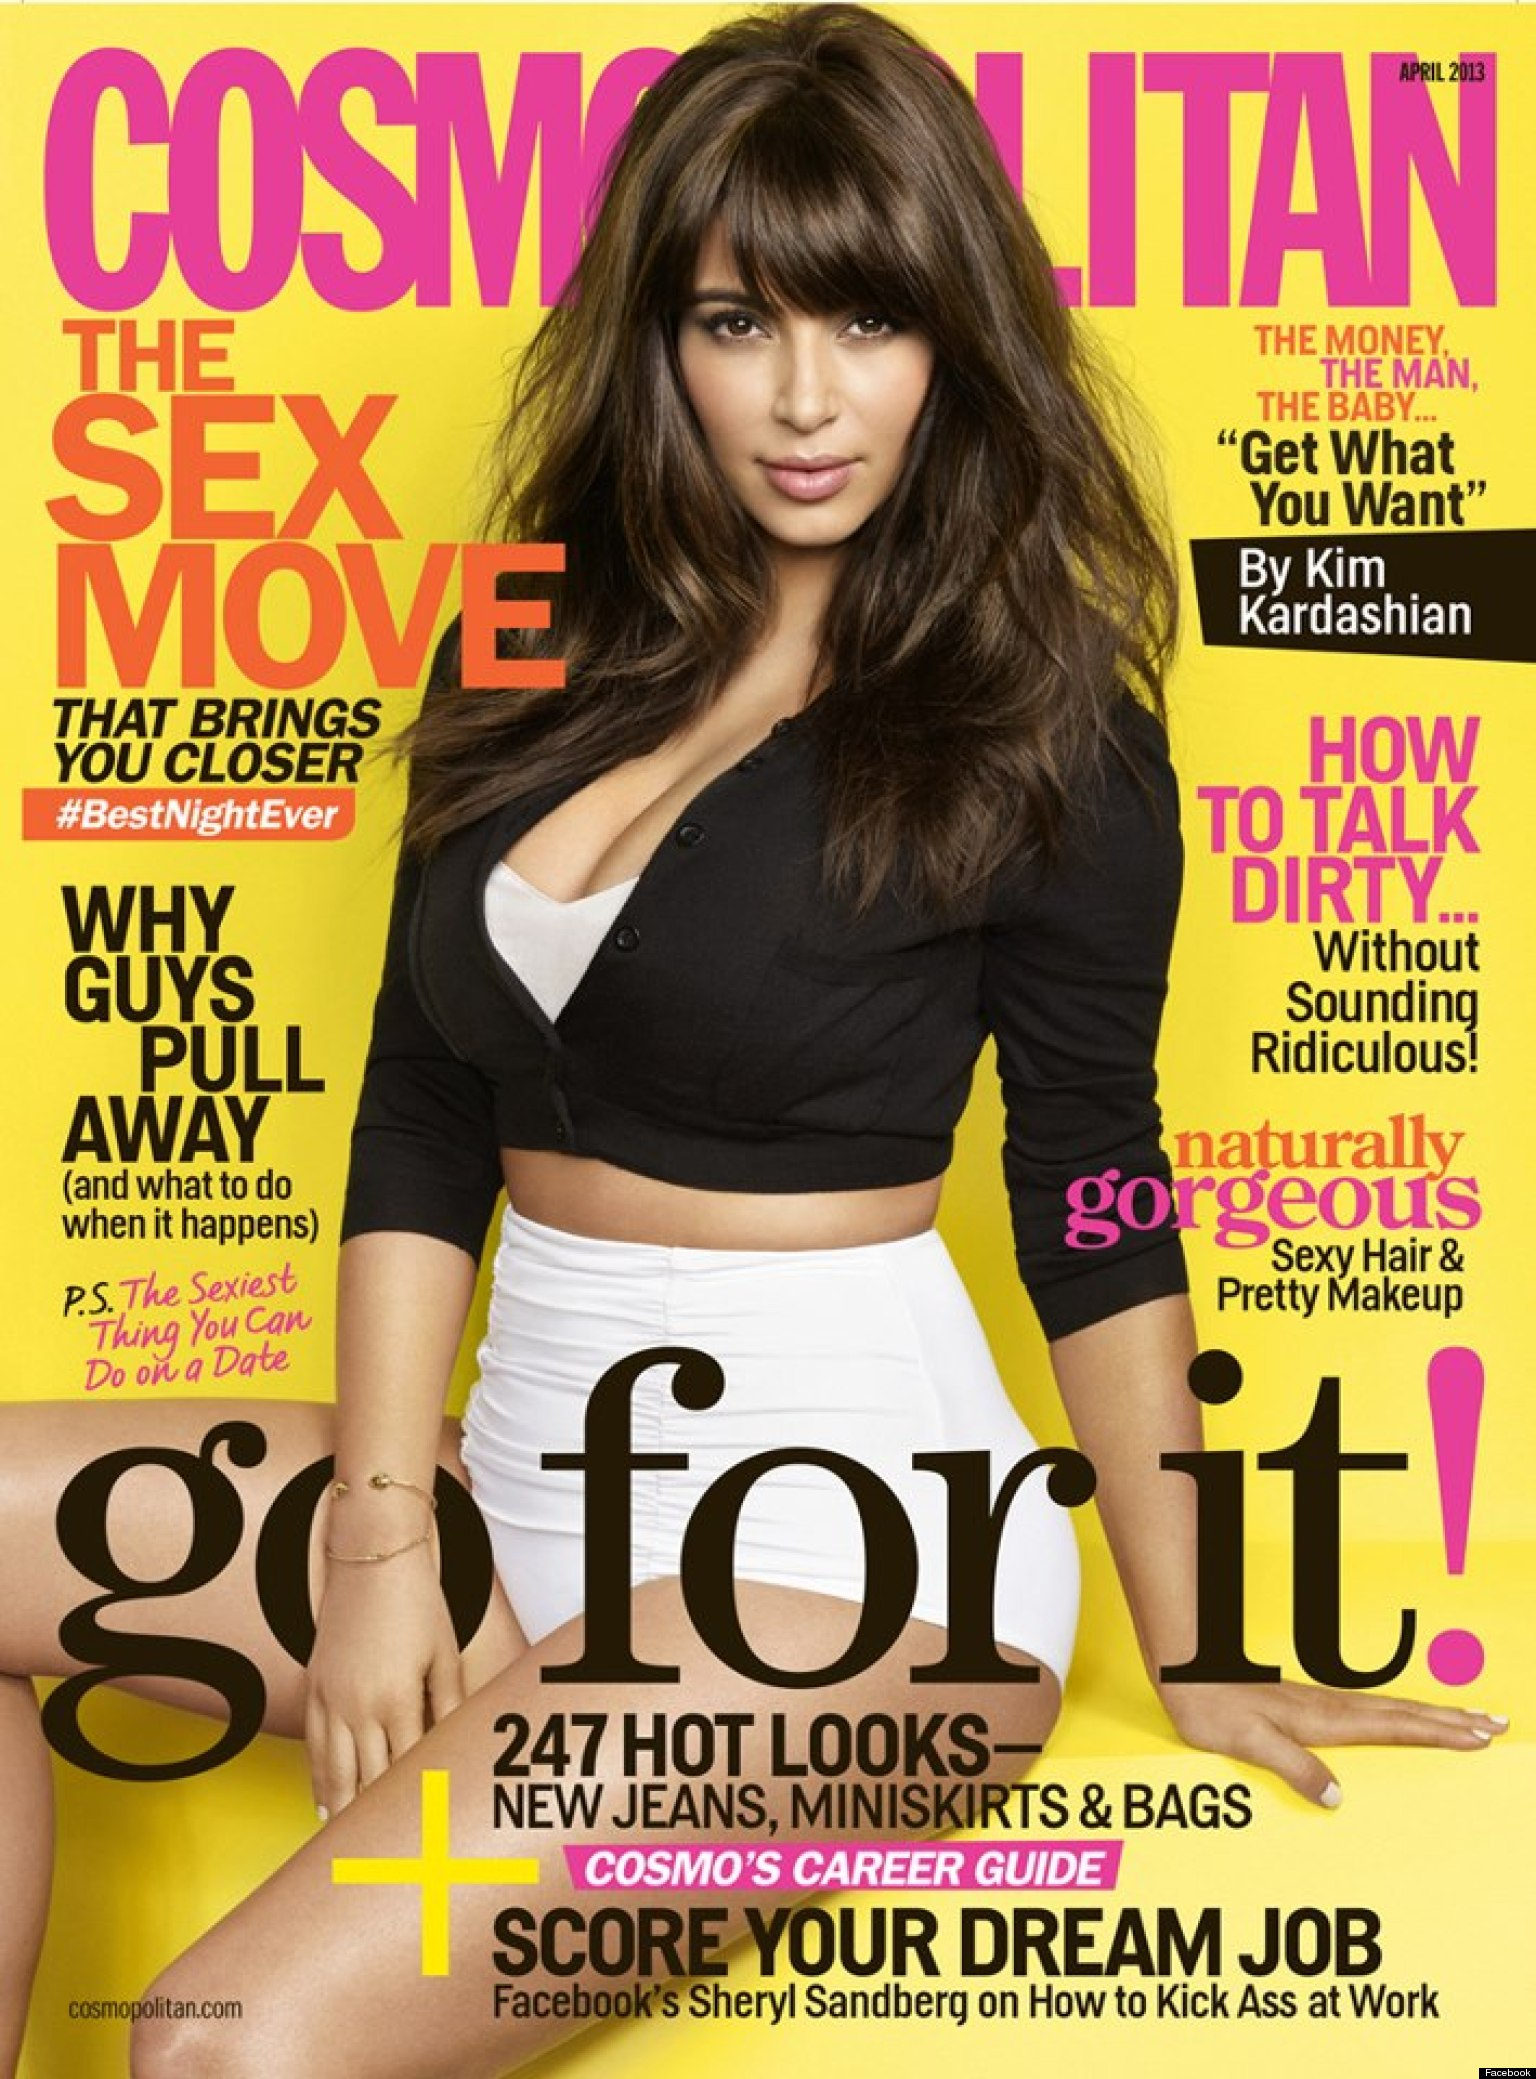 Women's Magazines Objectify Women Just As Much As Men's Magazines Do |  HuffPost